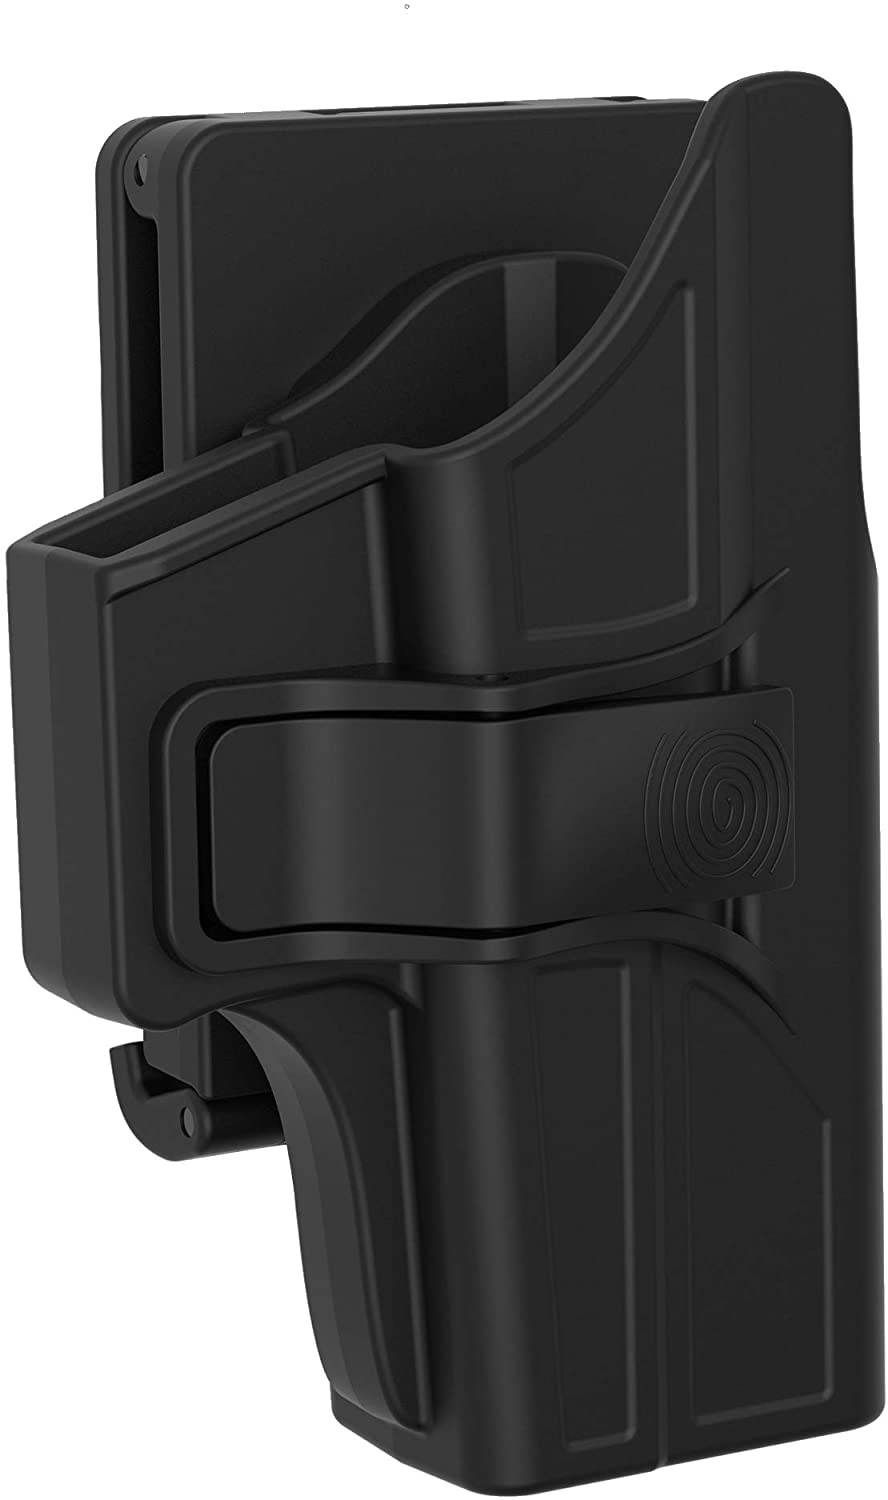 TEGE OWB Holster Compatible with Glock 43 43X, Index Finger Release Holster Fits G43 G43X, Tactical Polymer Outside Waistband 360° Adjustable Belt Holster, Open Carry Holster, Right-Handed